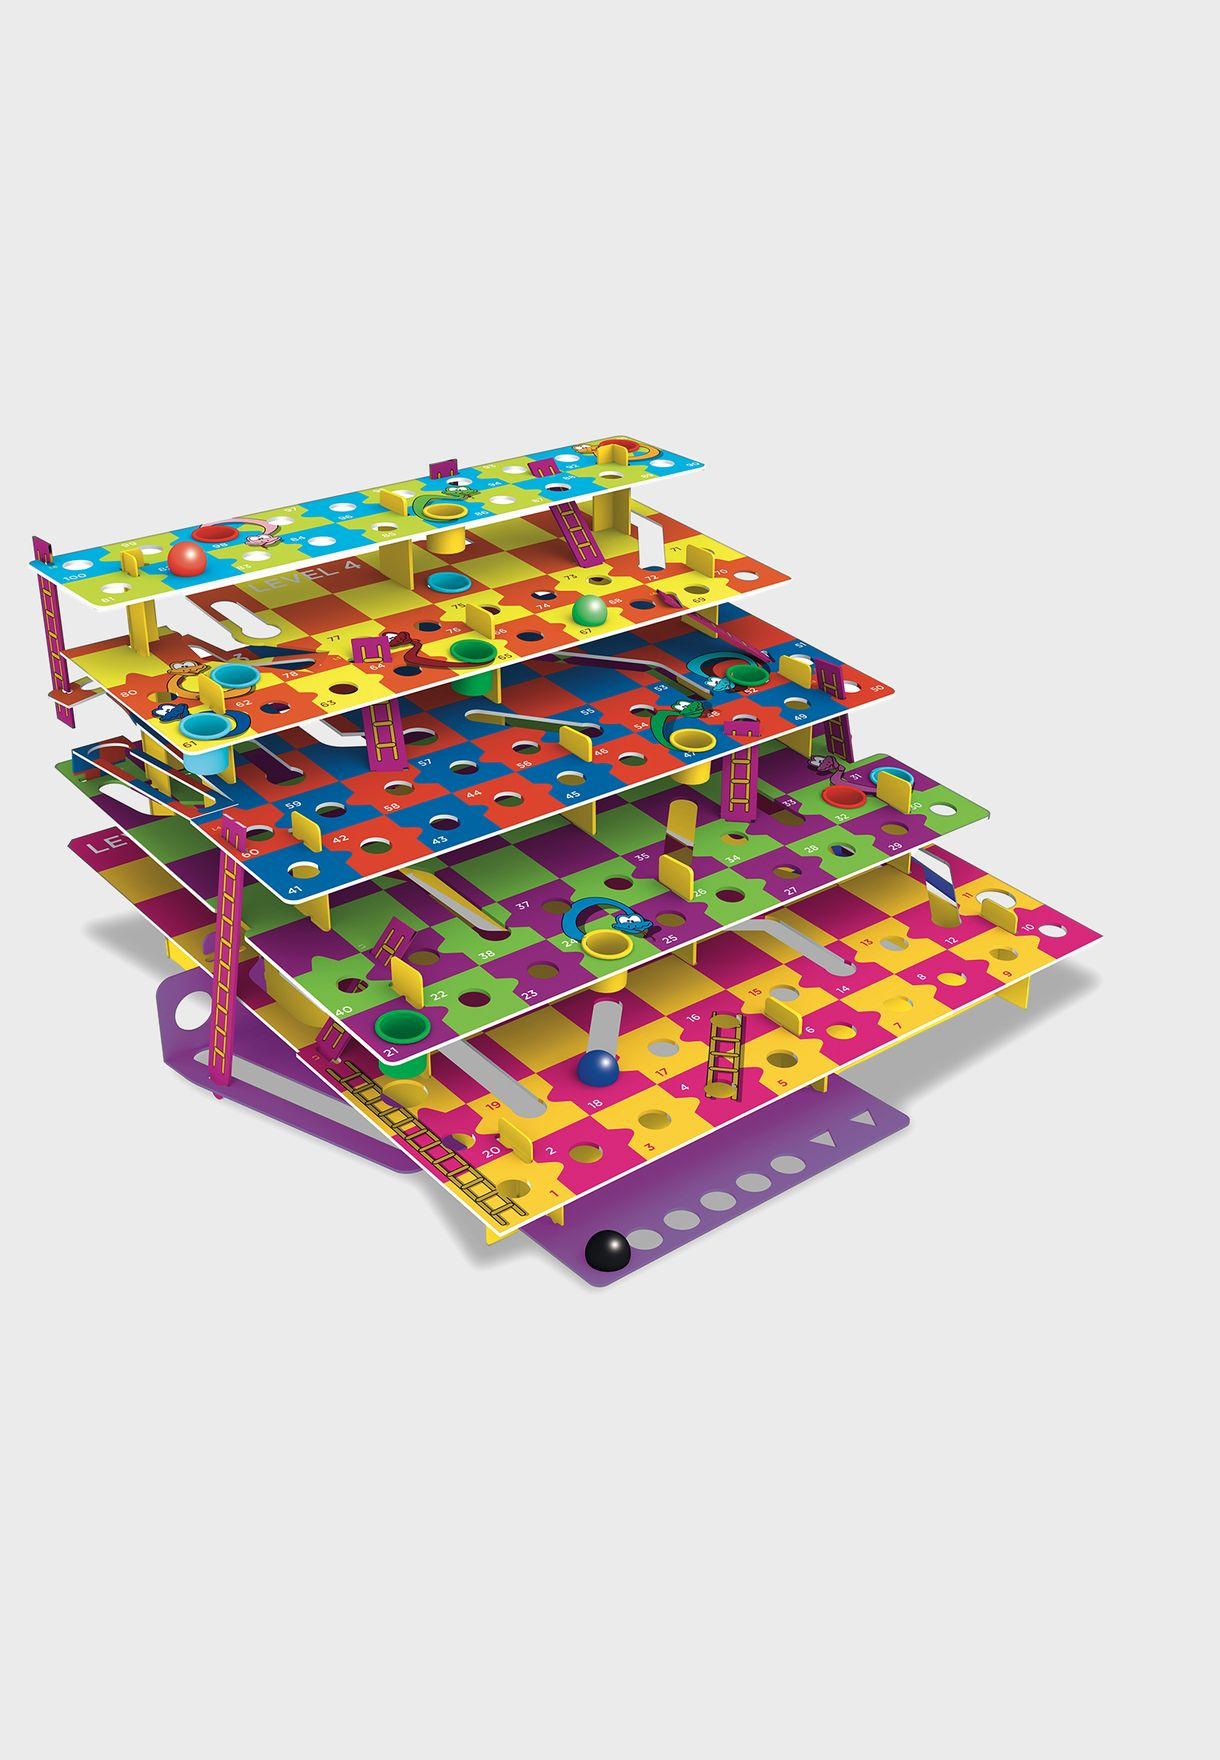 Classic Multi-Level Snakes And Ladders Board Game